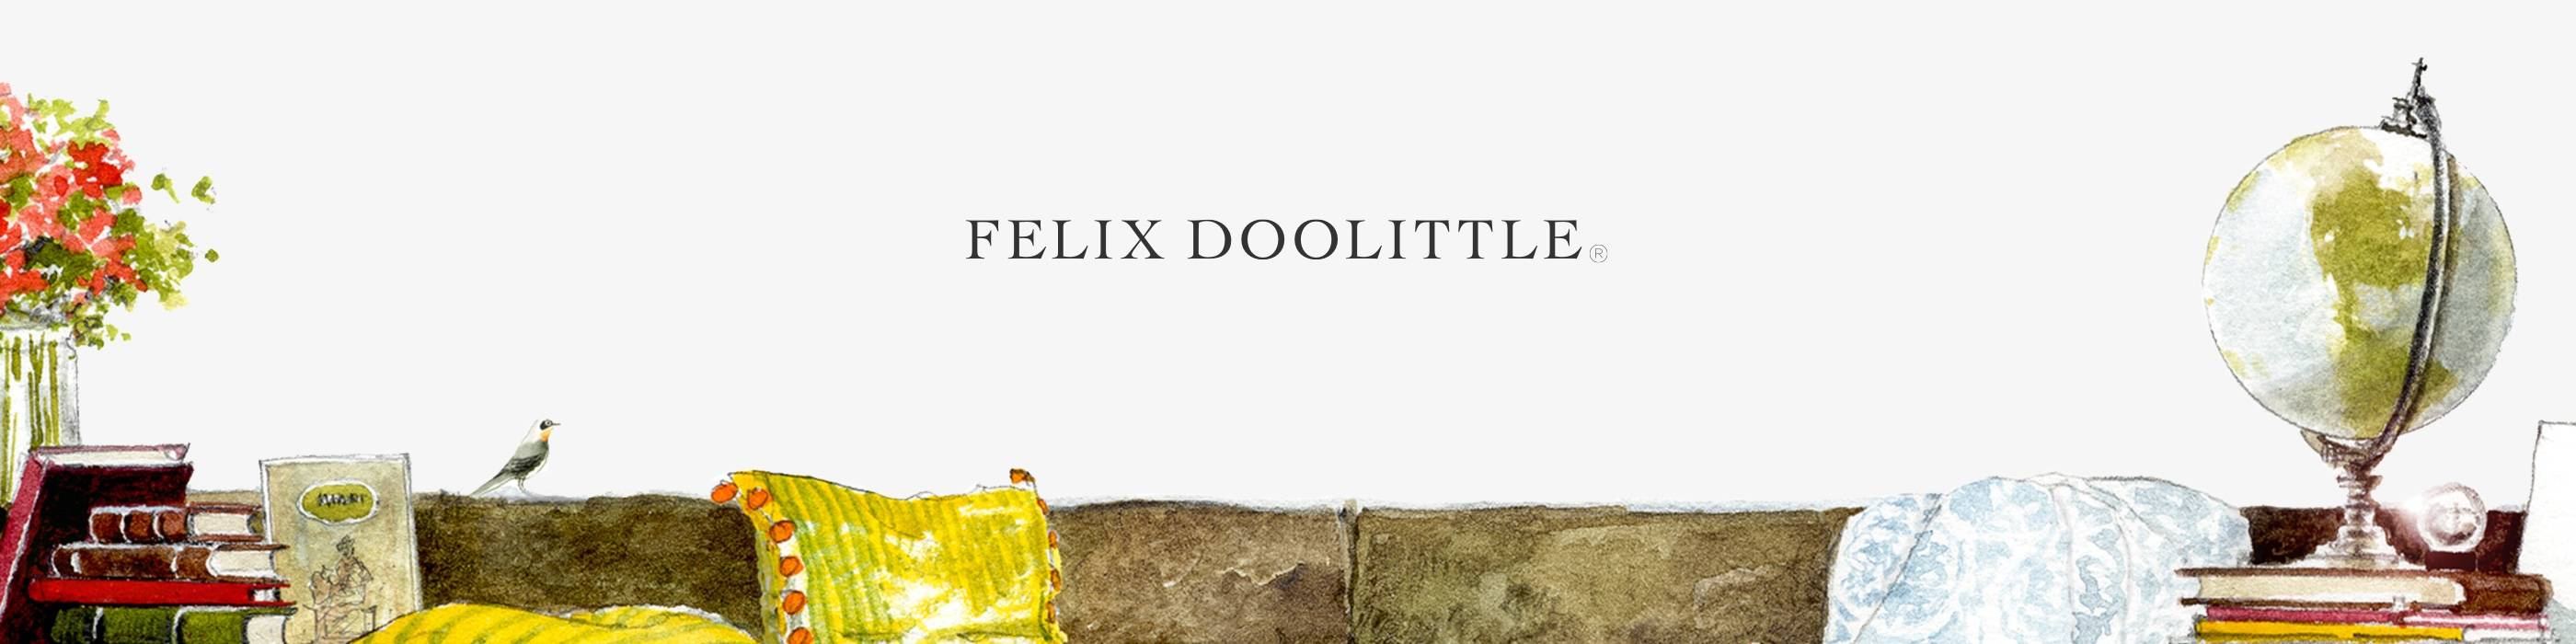 Felix Doolittle for Paperless Post